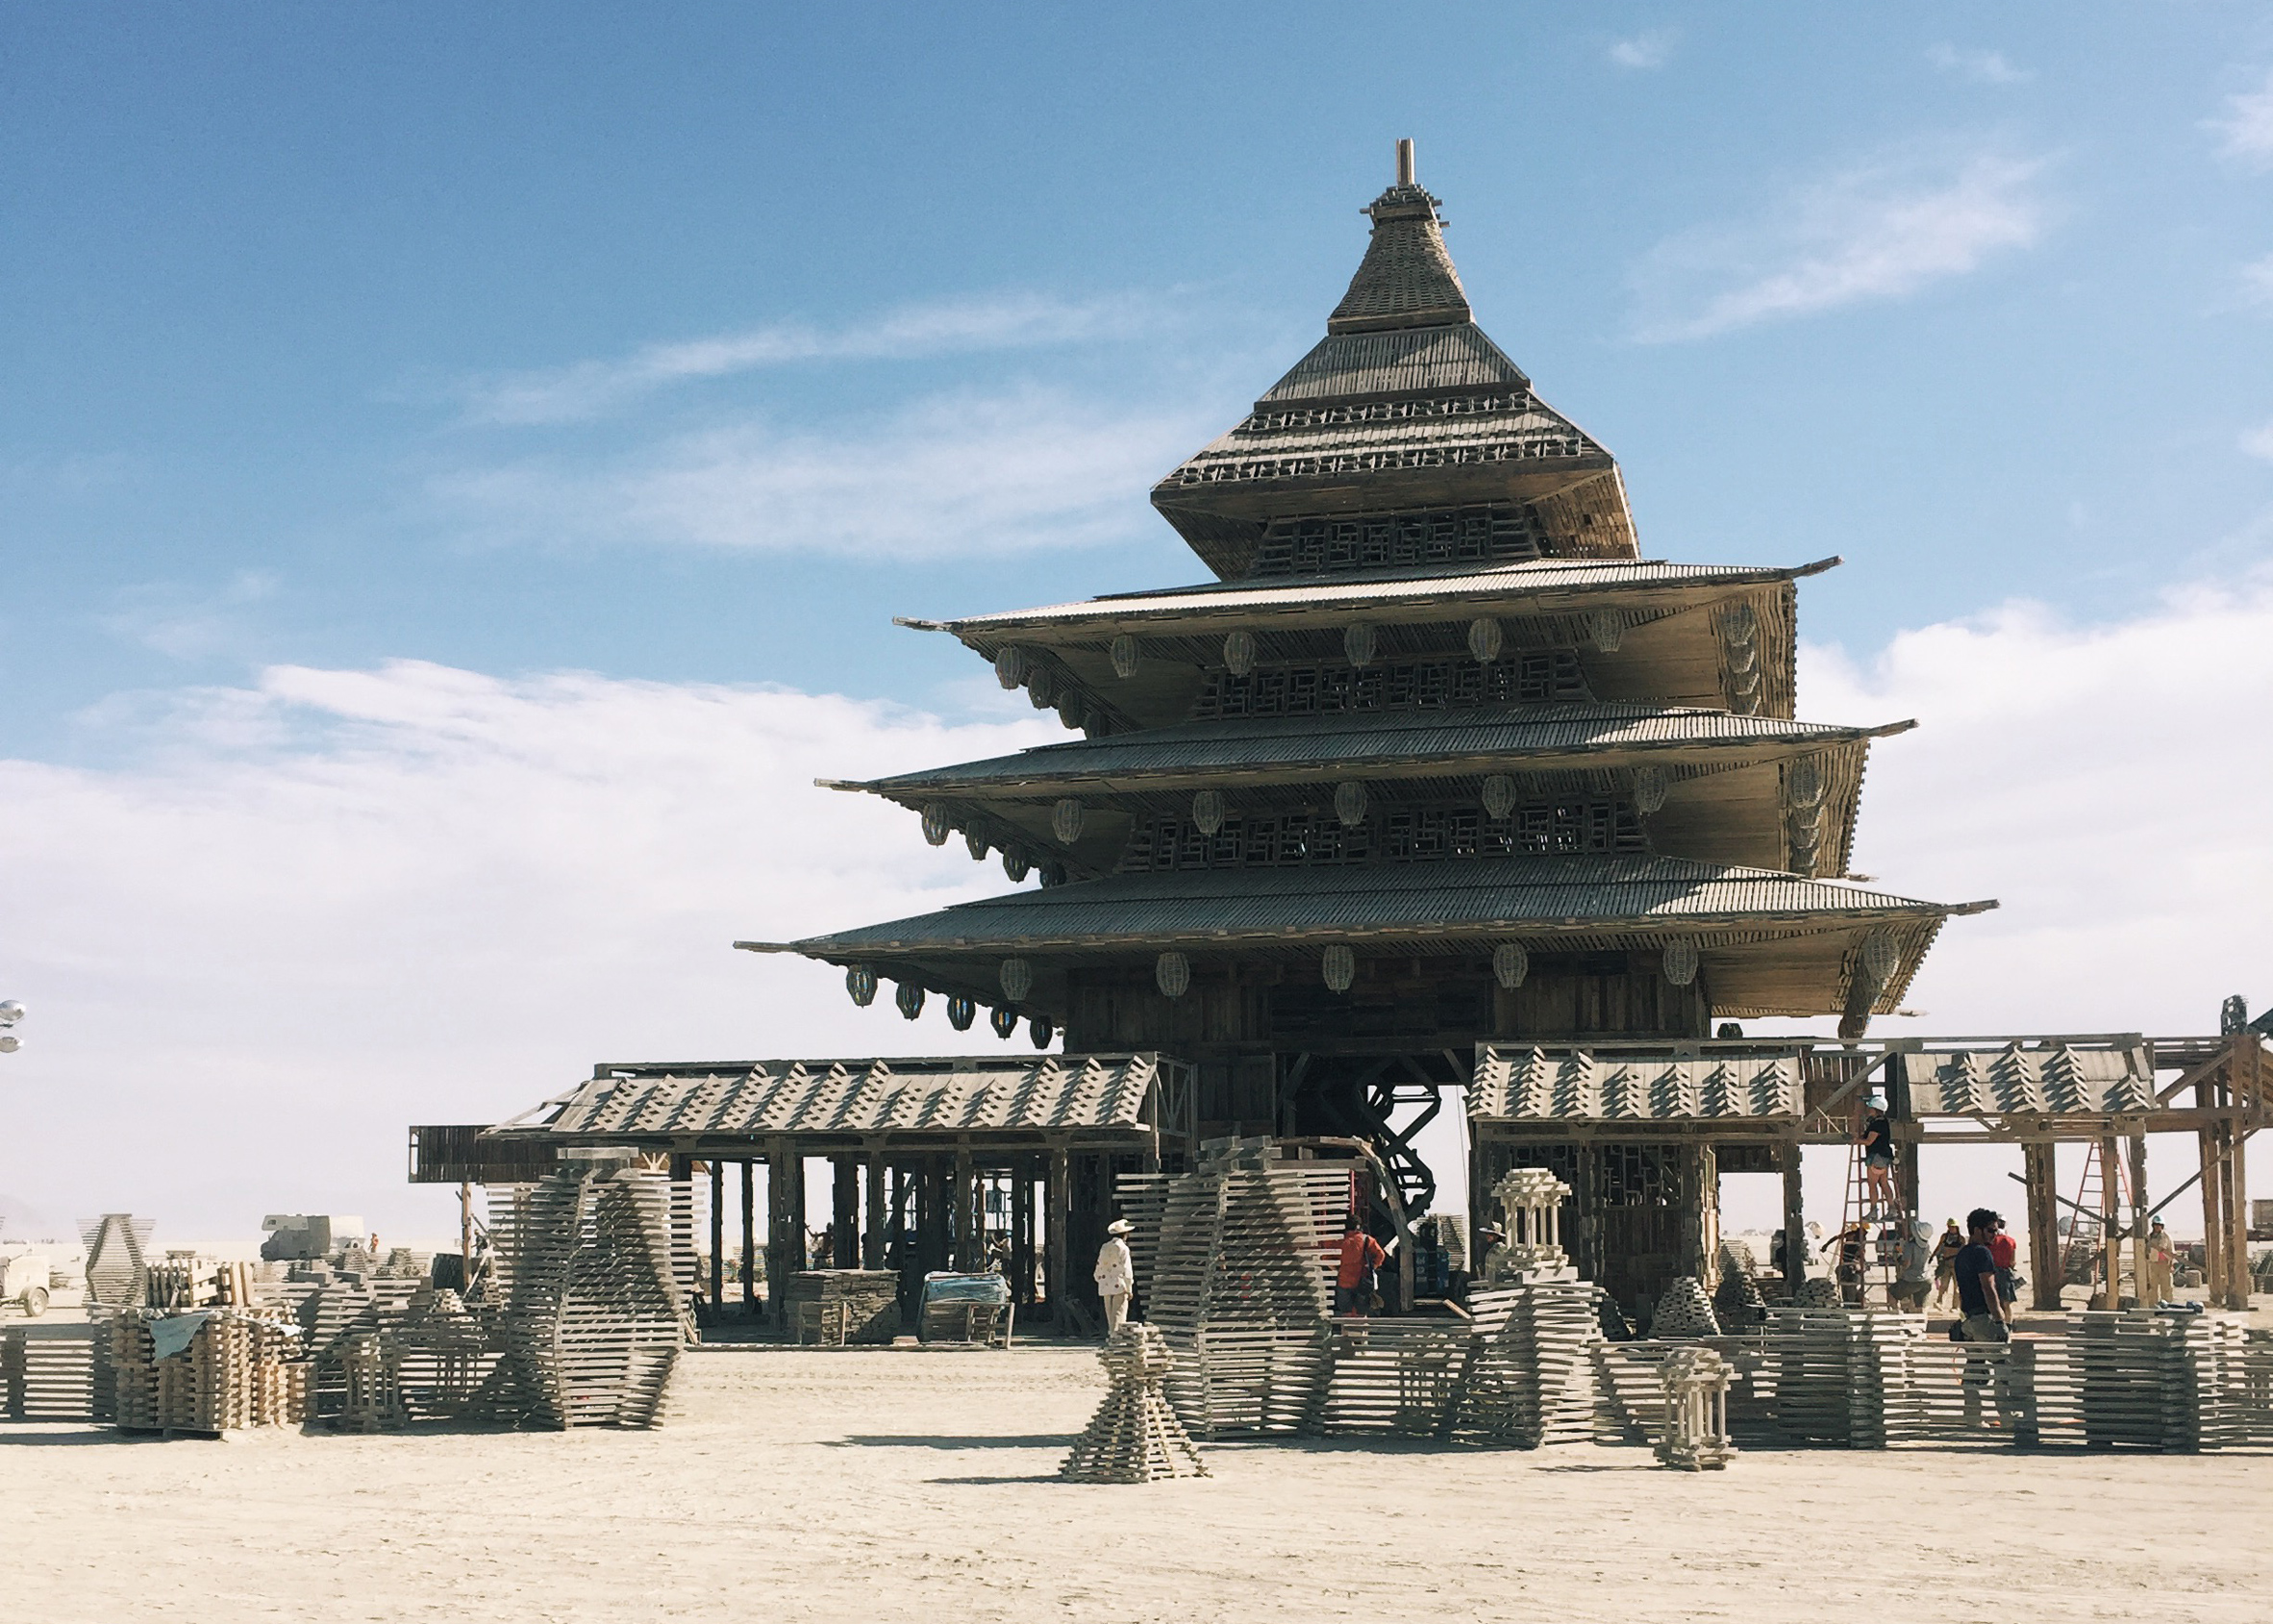 The Temple from the 2016 Burning Man Photo: dezeen